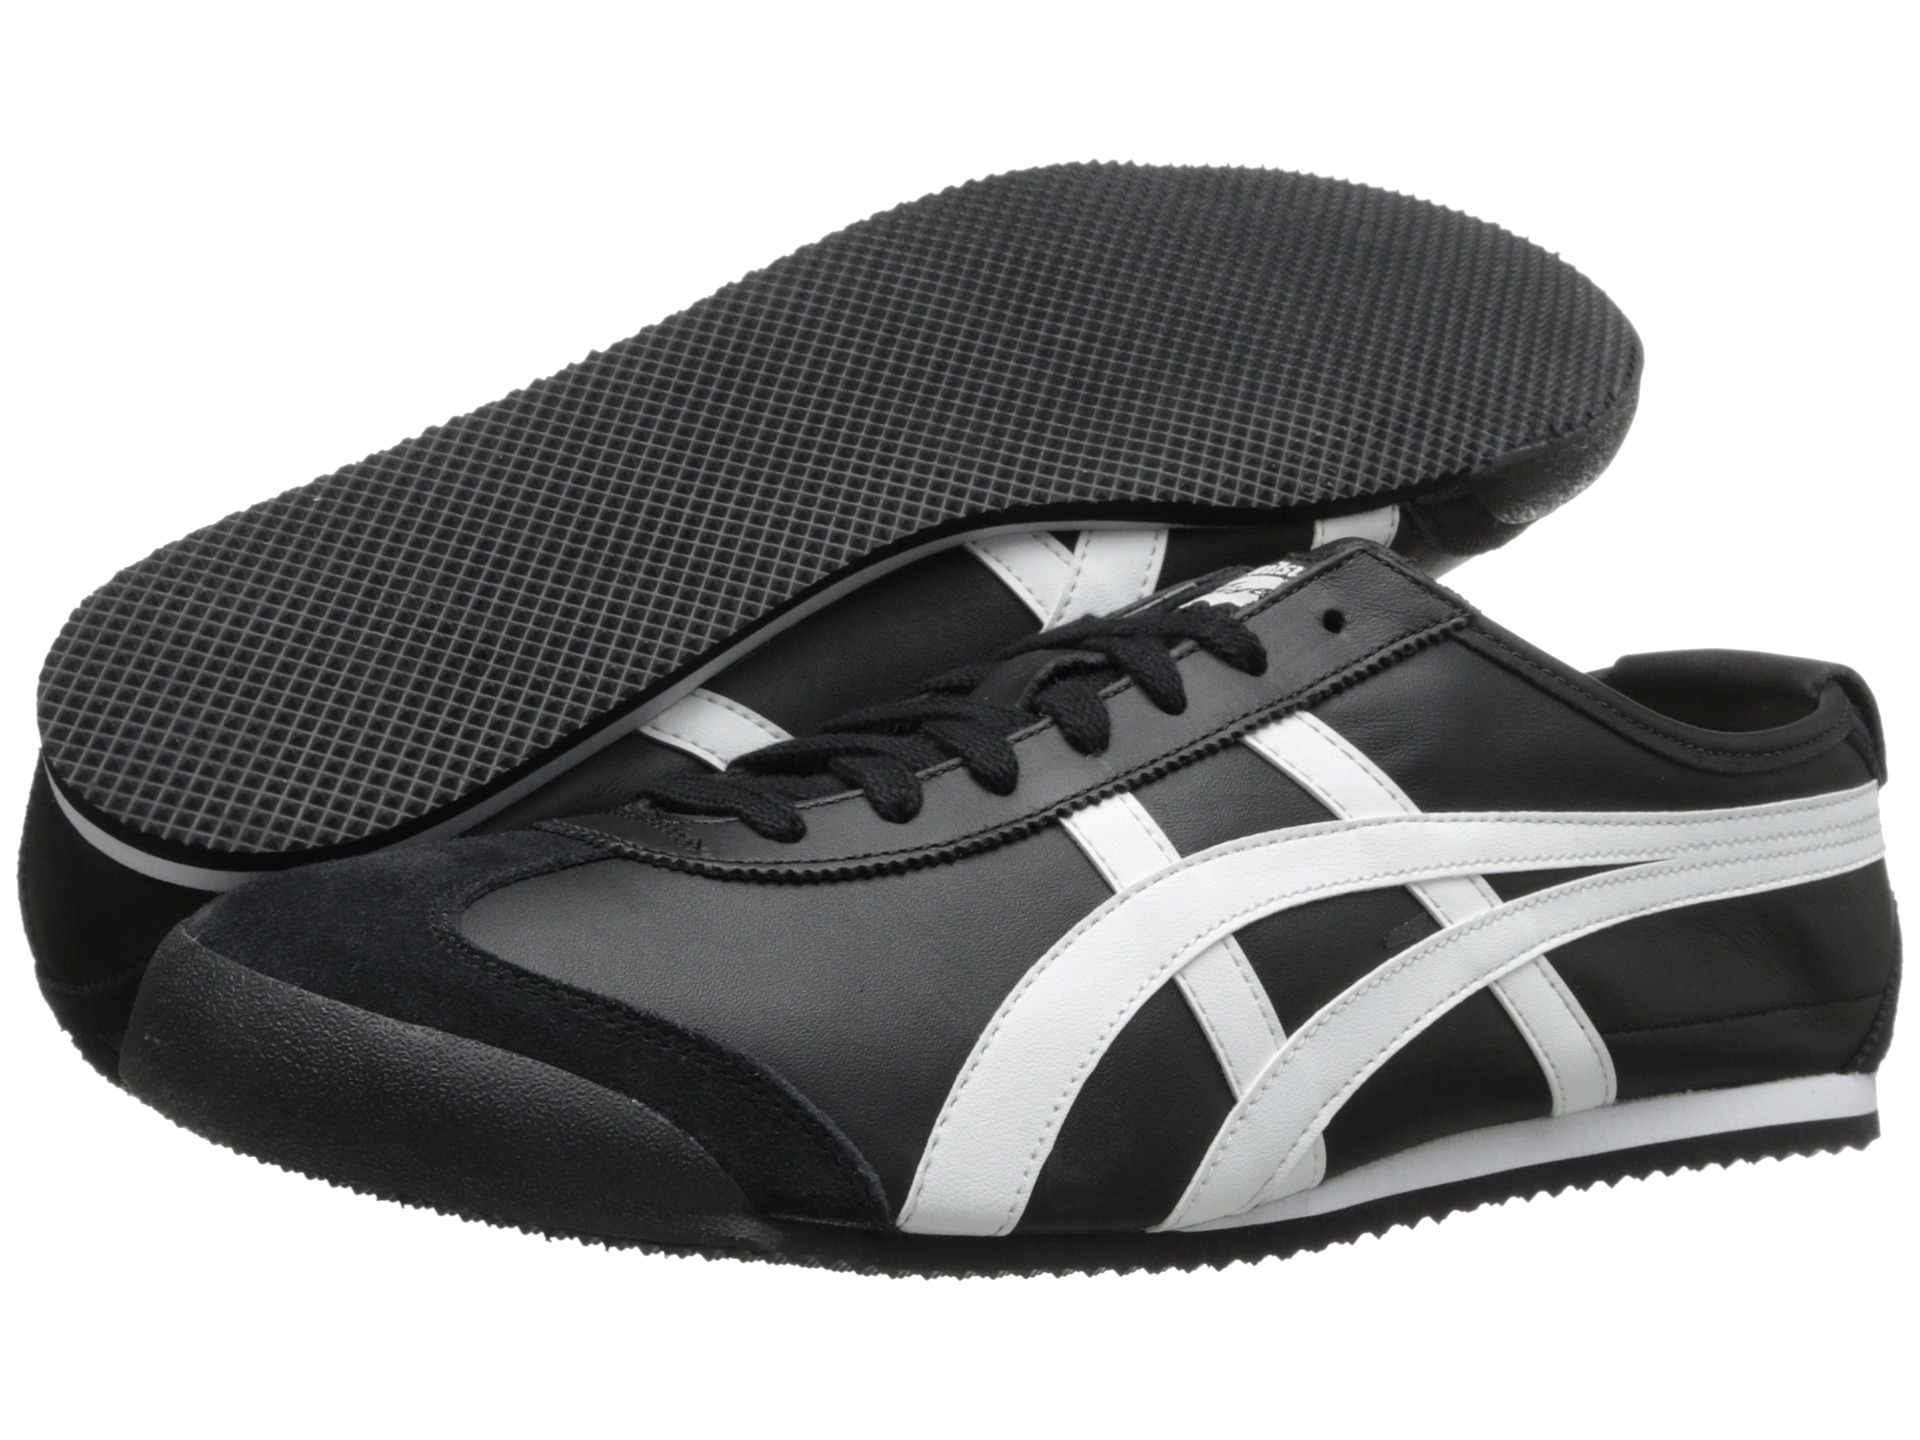 new style c0fa8 7f221 onitsuka tiger mexico 66 shoes